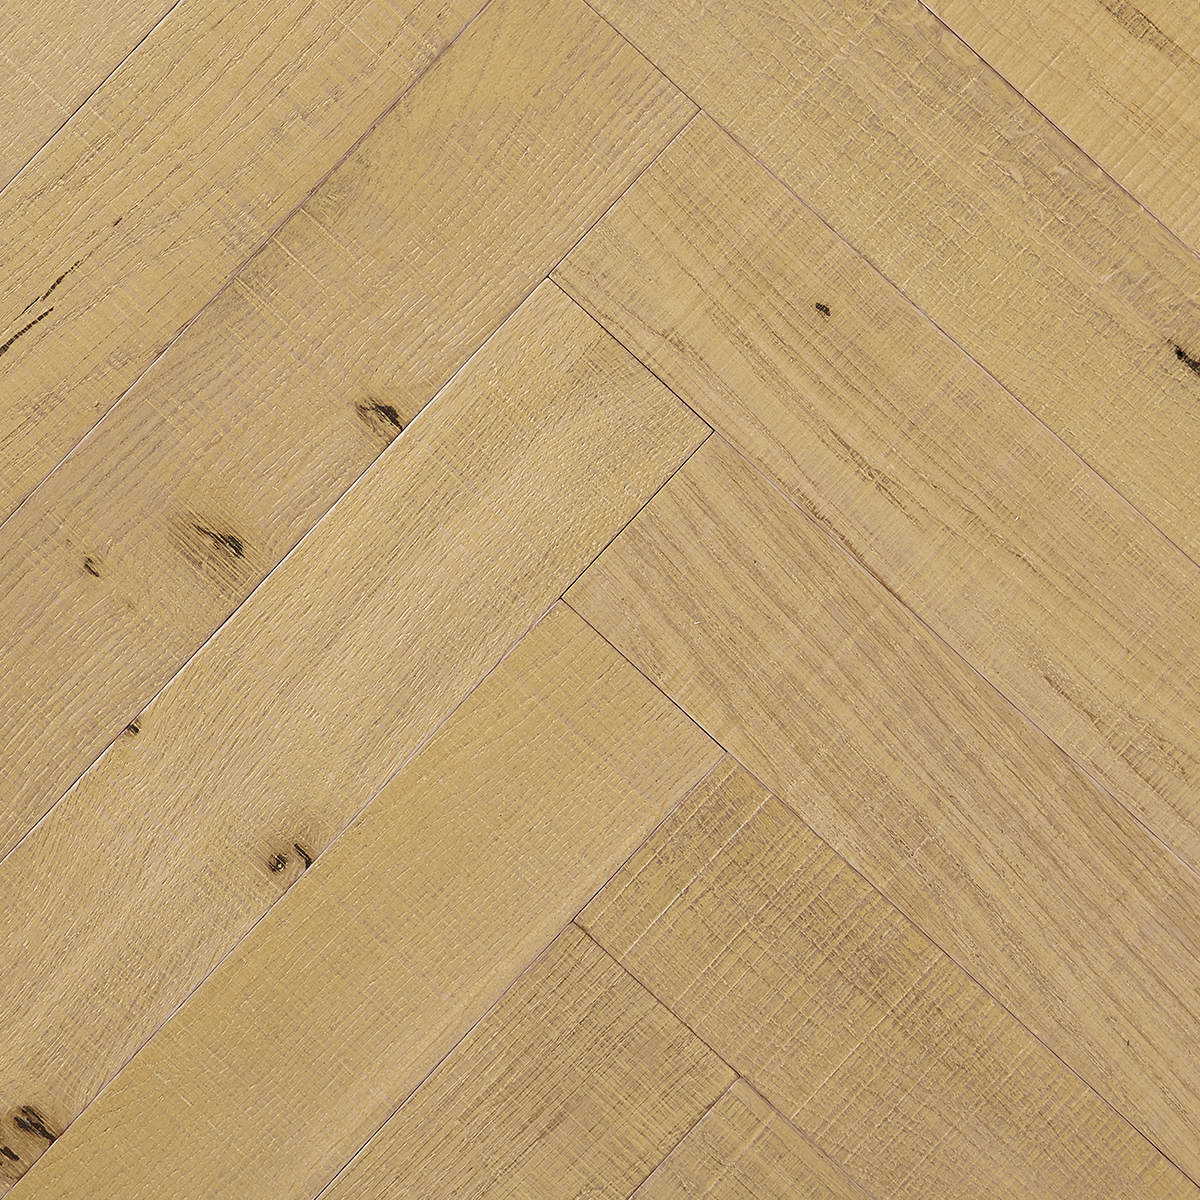 Camden Herringbone Woodworks By Ted Todd Engineered Wood